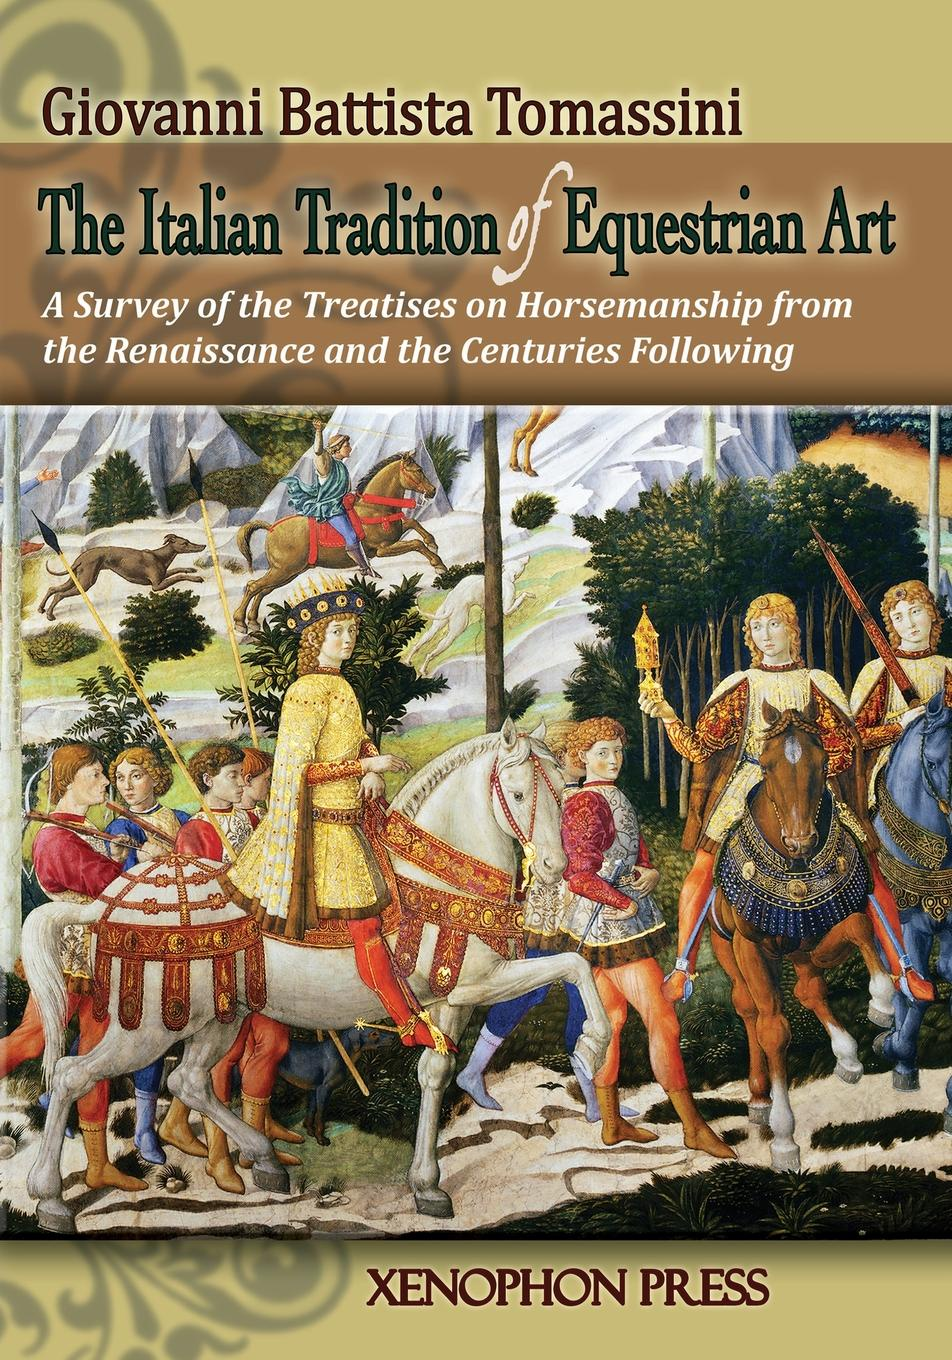 GIOVANNI BATTISTA TOMASSINI THE ITALIAN TRADITION OF EQUESTRIAN ART. A SURVEY OF THE TREATISES ON HORSEMANSHIP FROM THE RENAISSANCE AND THE CENTURIES FOLLOWING